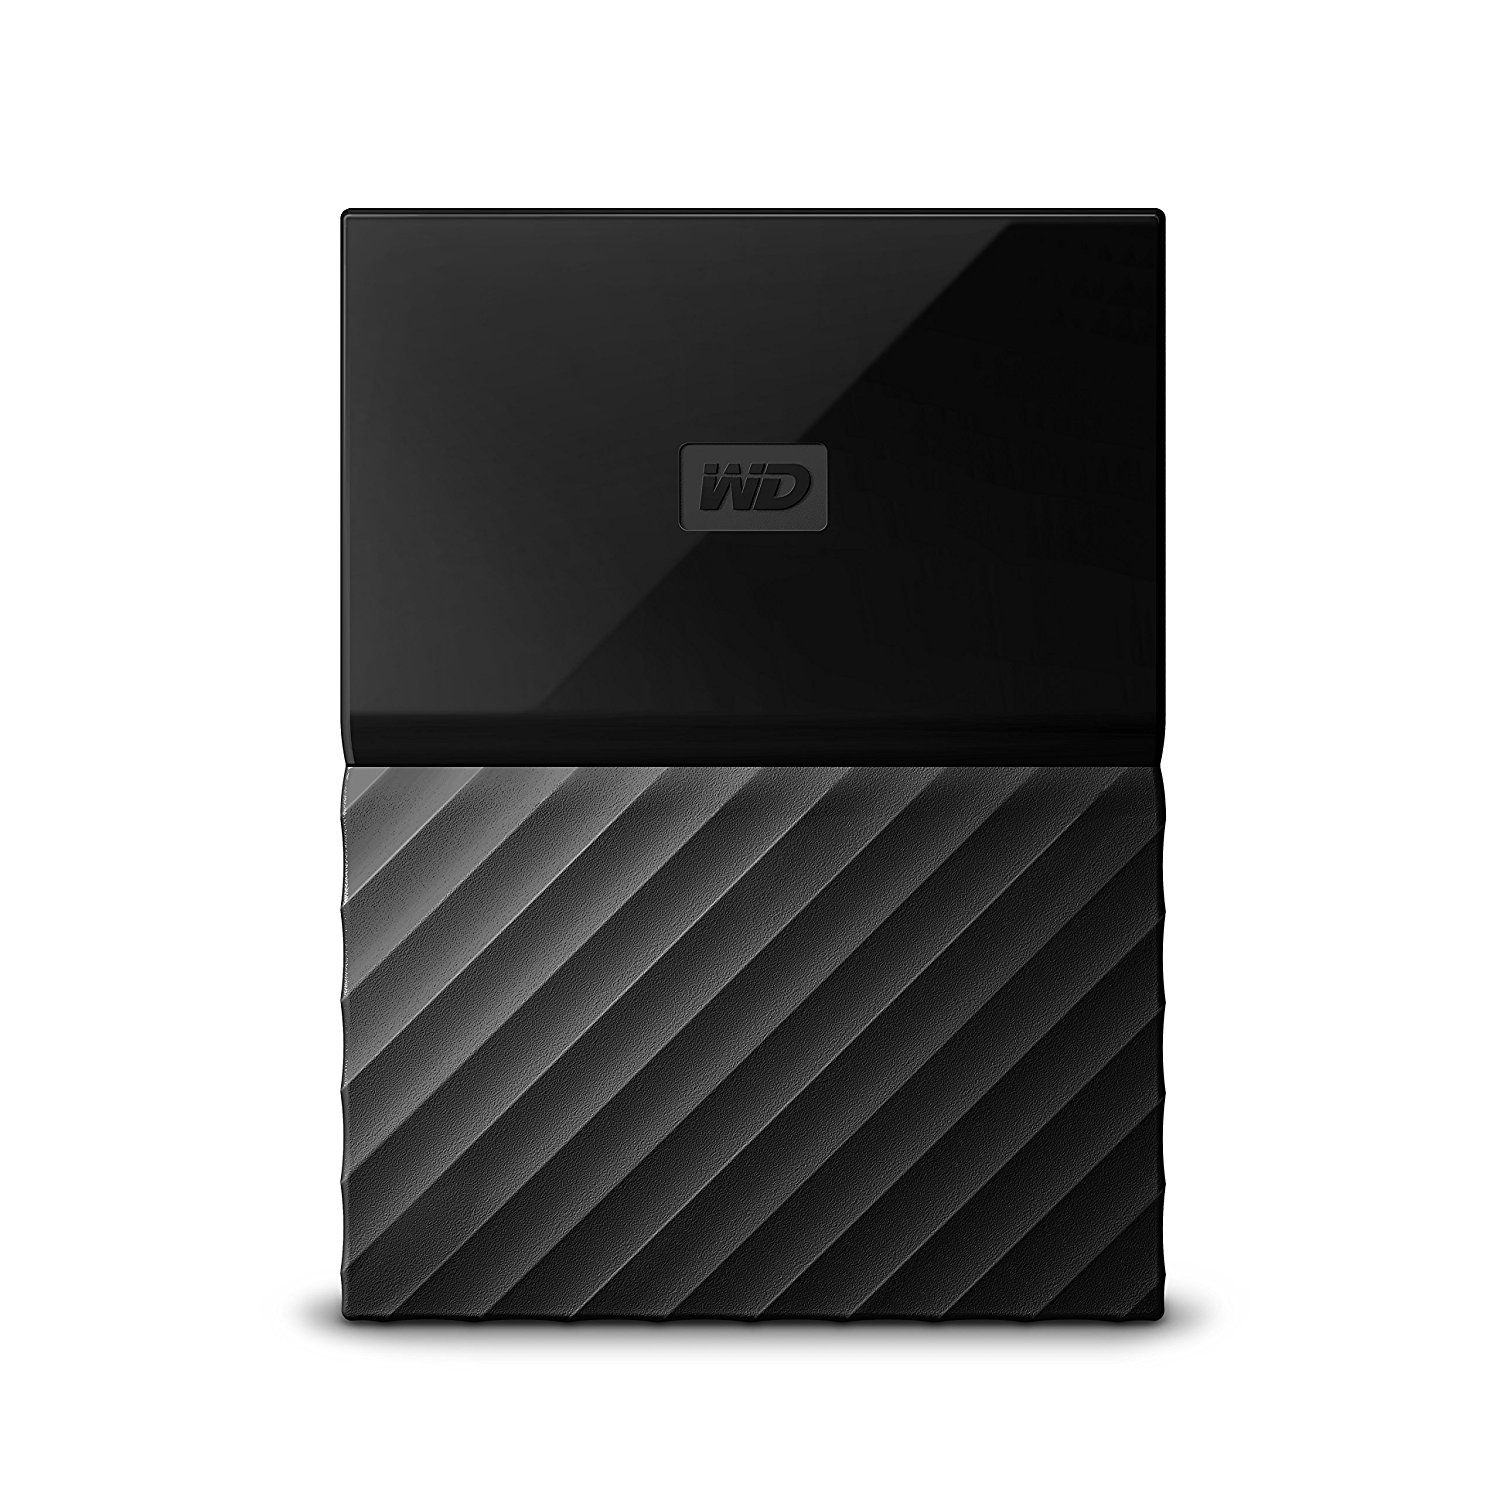 WD My Passport Festplatte amazon